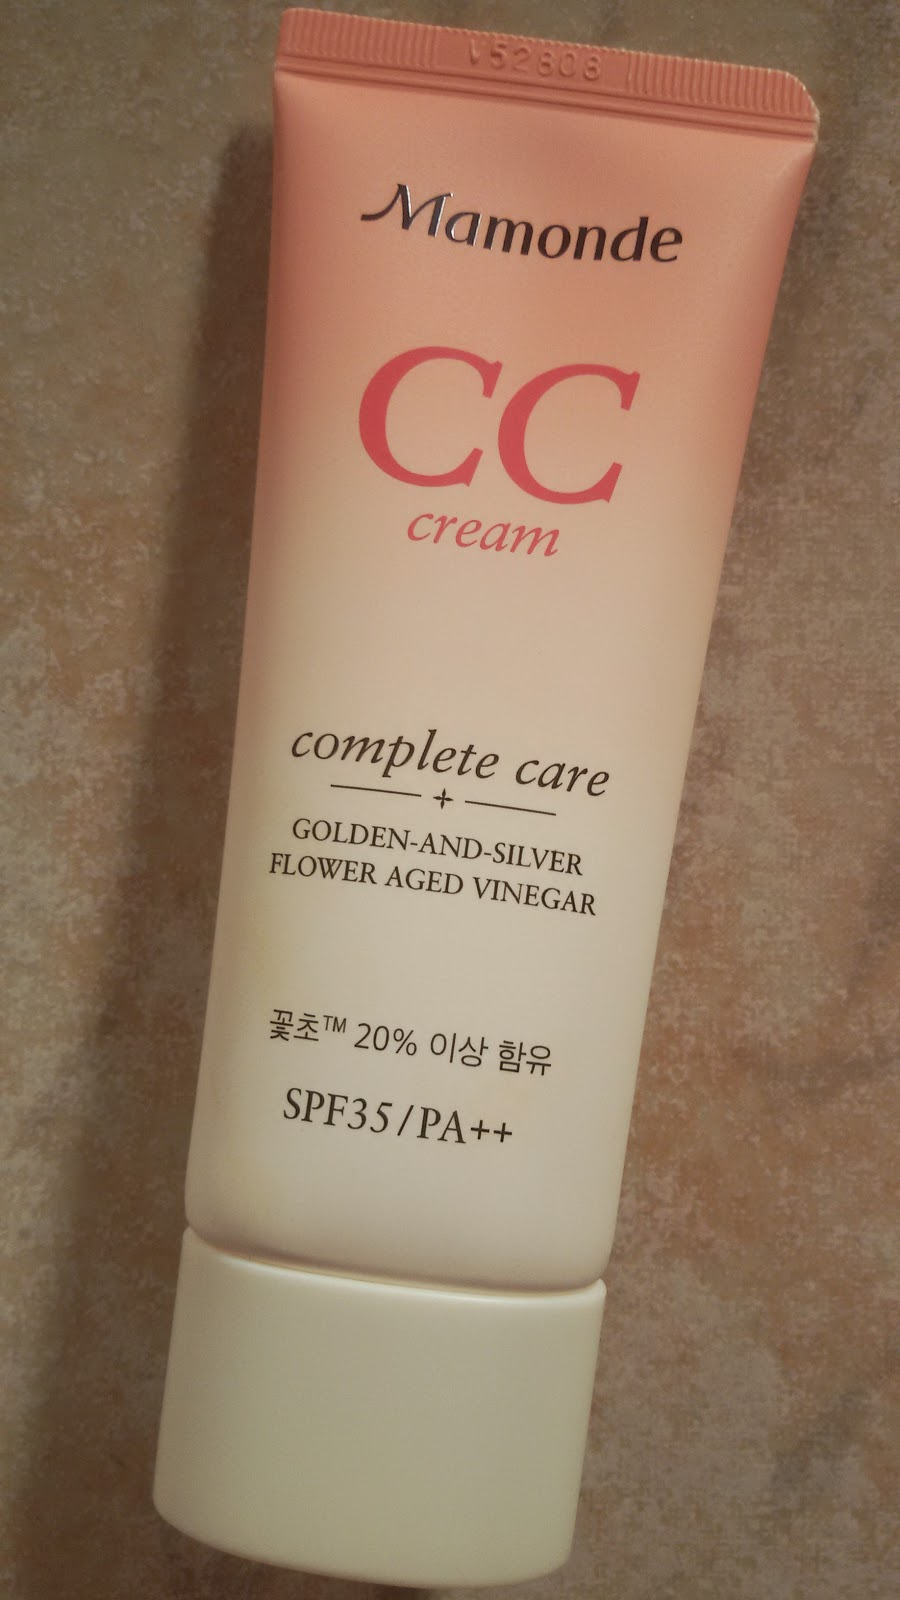 Mamonde CС-cream Complete Care golden-and-silver flower aged vinegar SPF35/PA++